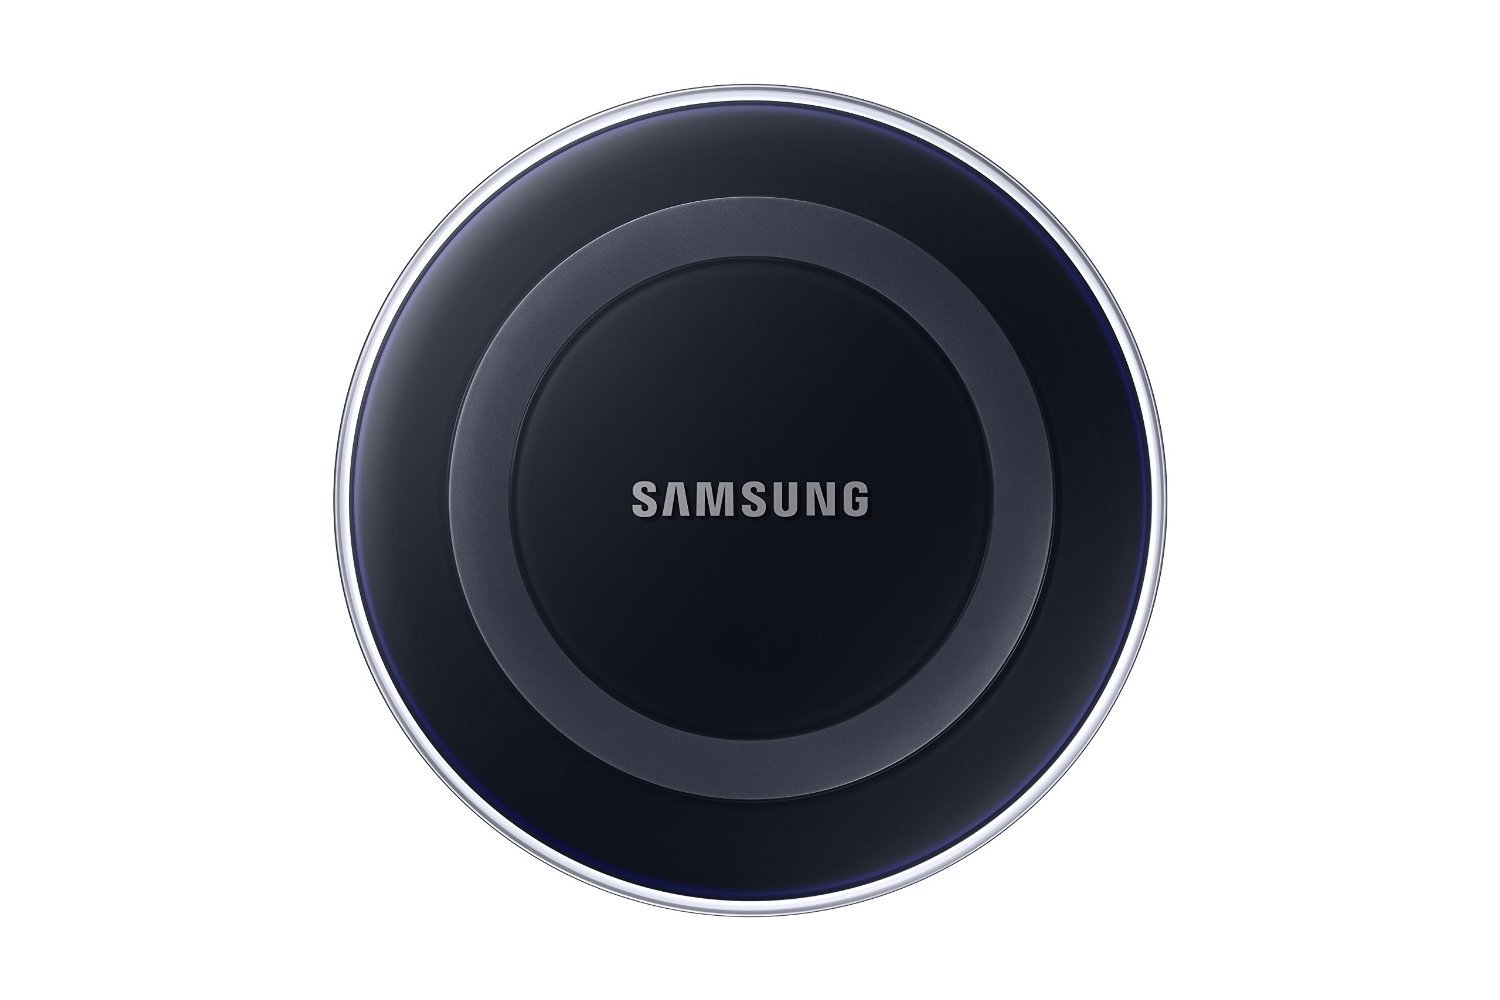 Samsung Qi Certified Wireless Charger Pad - US Version - Black Image